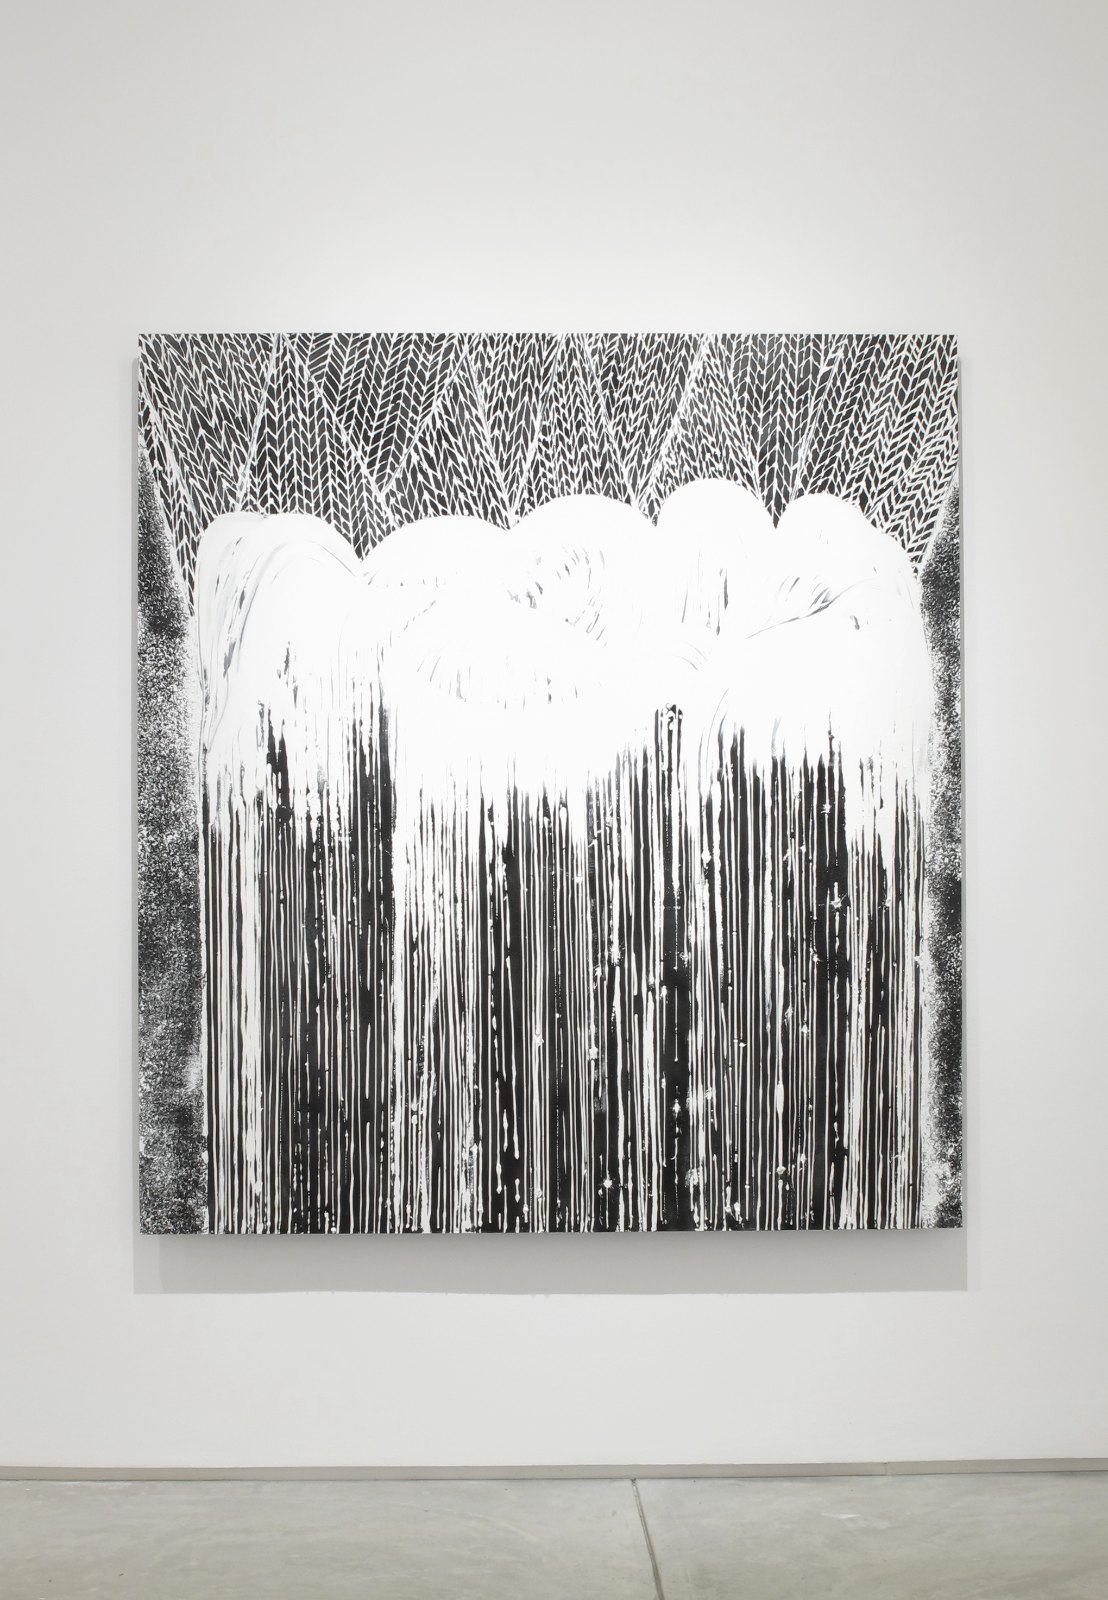 Around Your Altogether (Large Wave), 2016, oil and ground pumice stone on aluminum honeycomb panel, 165 x 150 cm. Installation view Håvard Homstvedt, A glove in a dusty dream, Inman Gallery, Houston 2016.